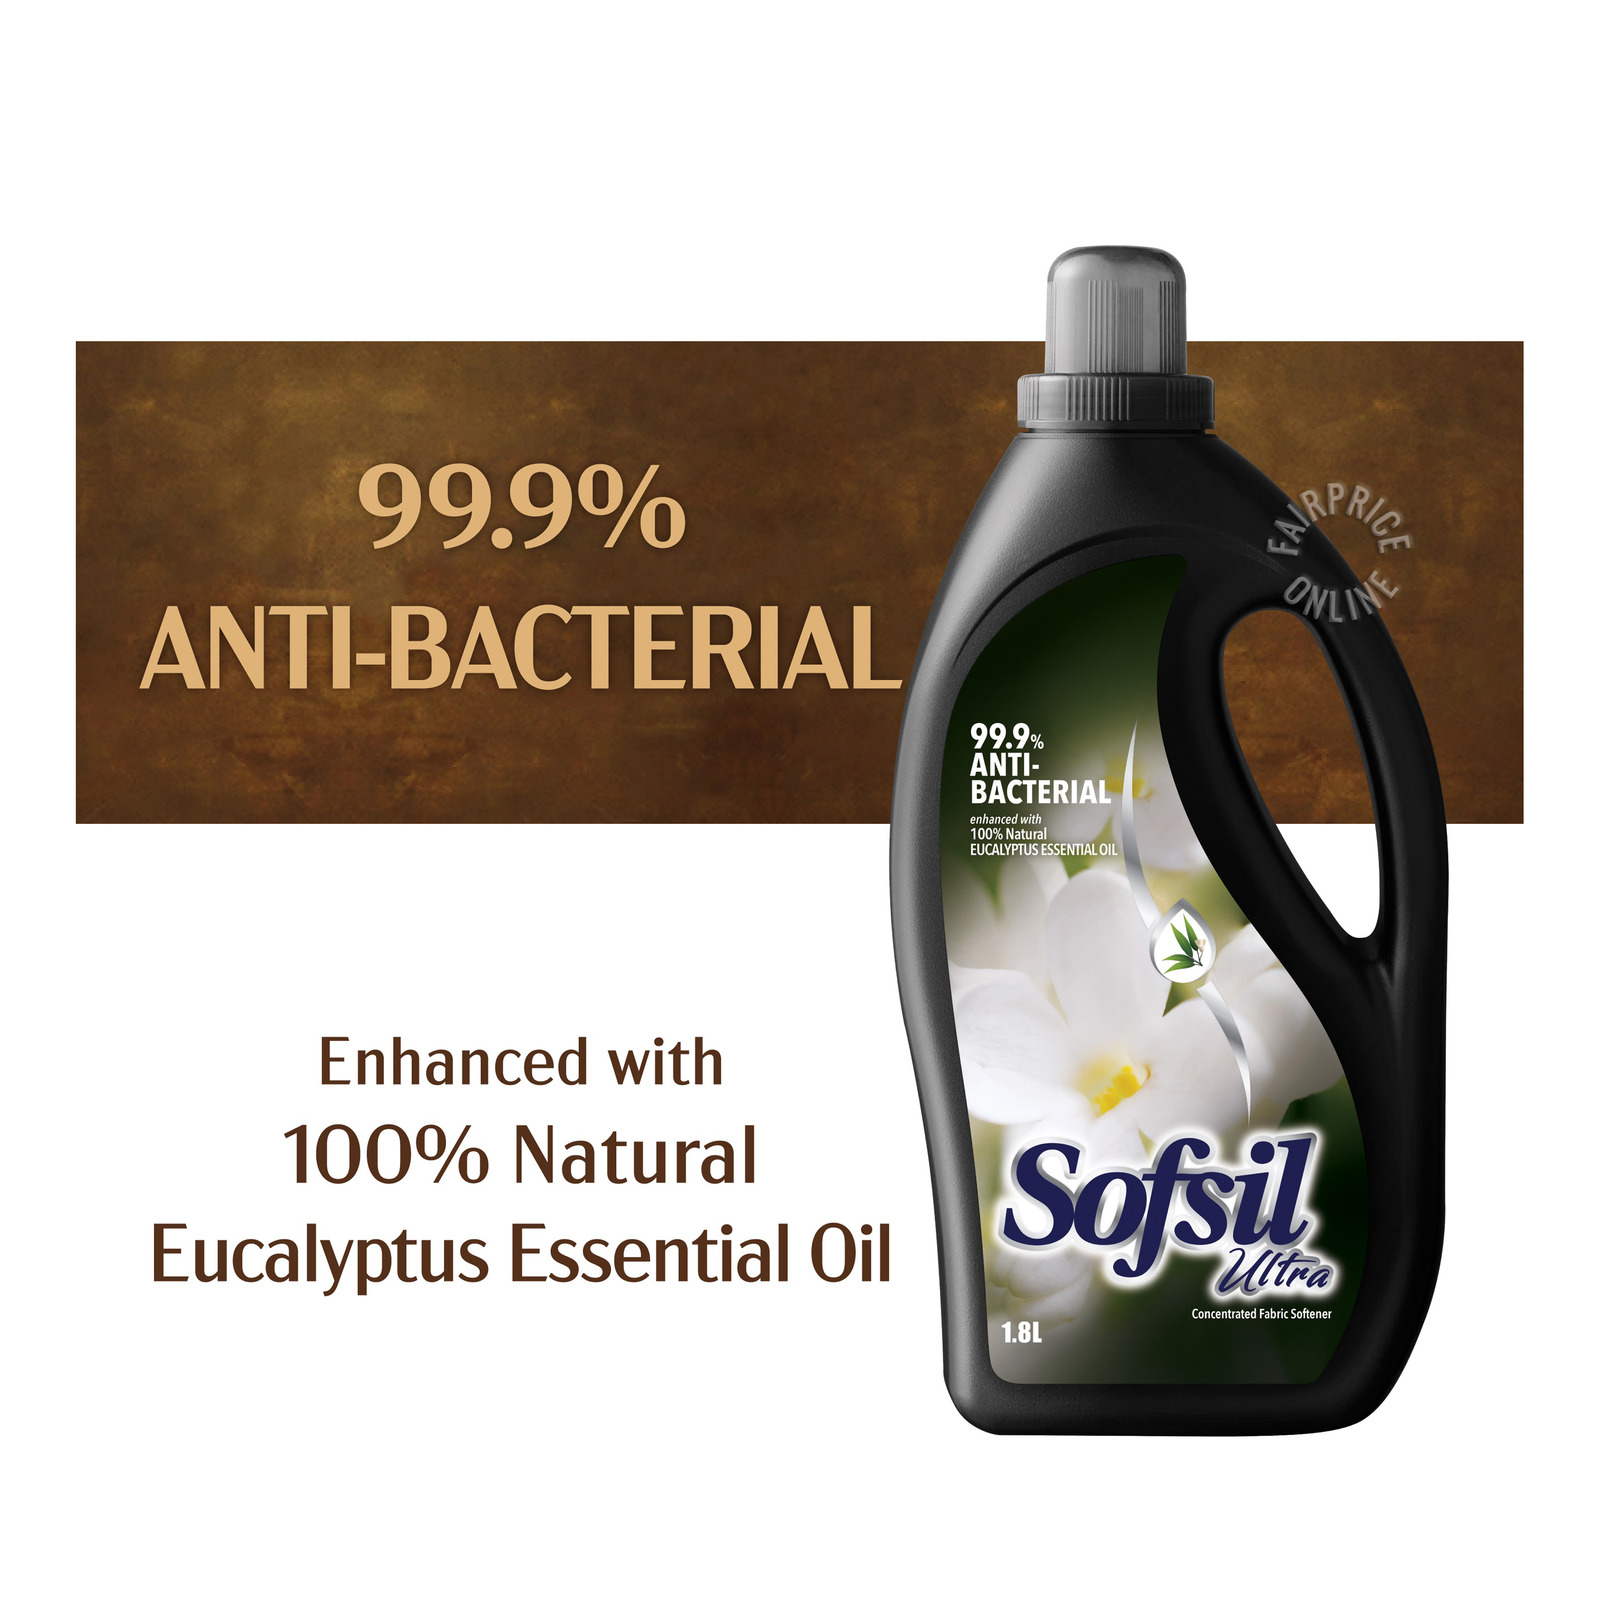 Sofsil Ultra Concentrated Fabric Softener - Anti-Bacterial